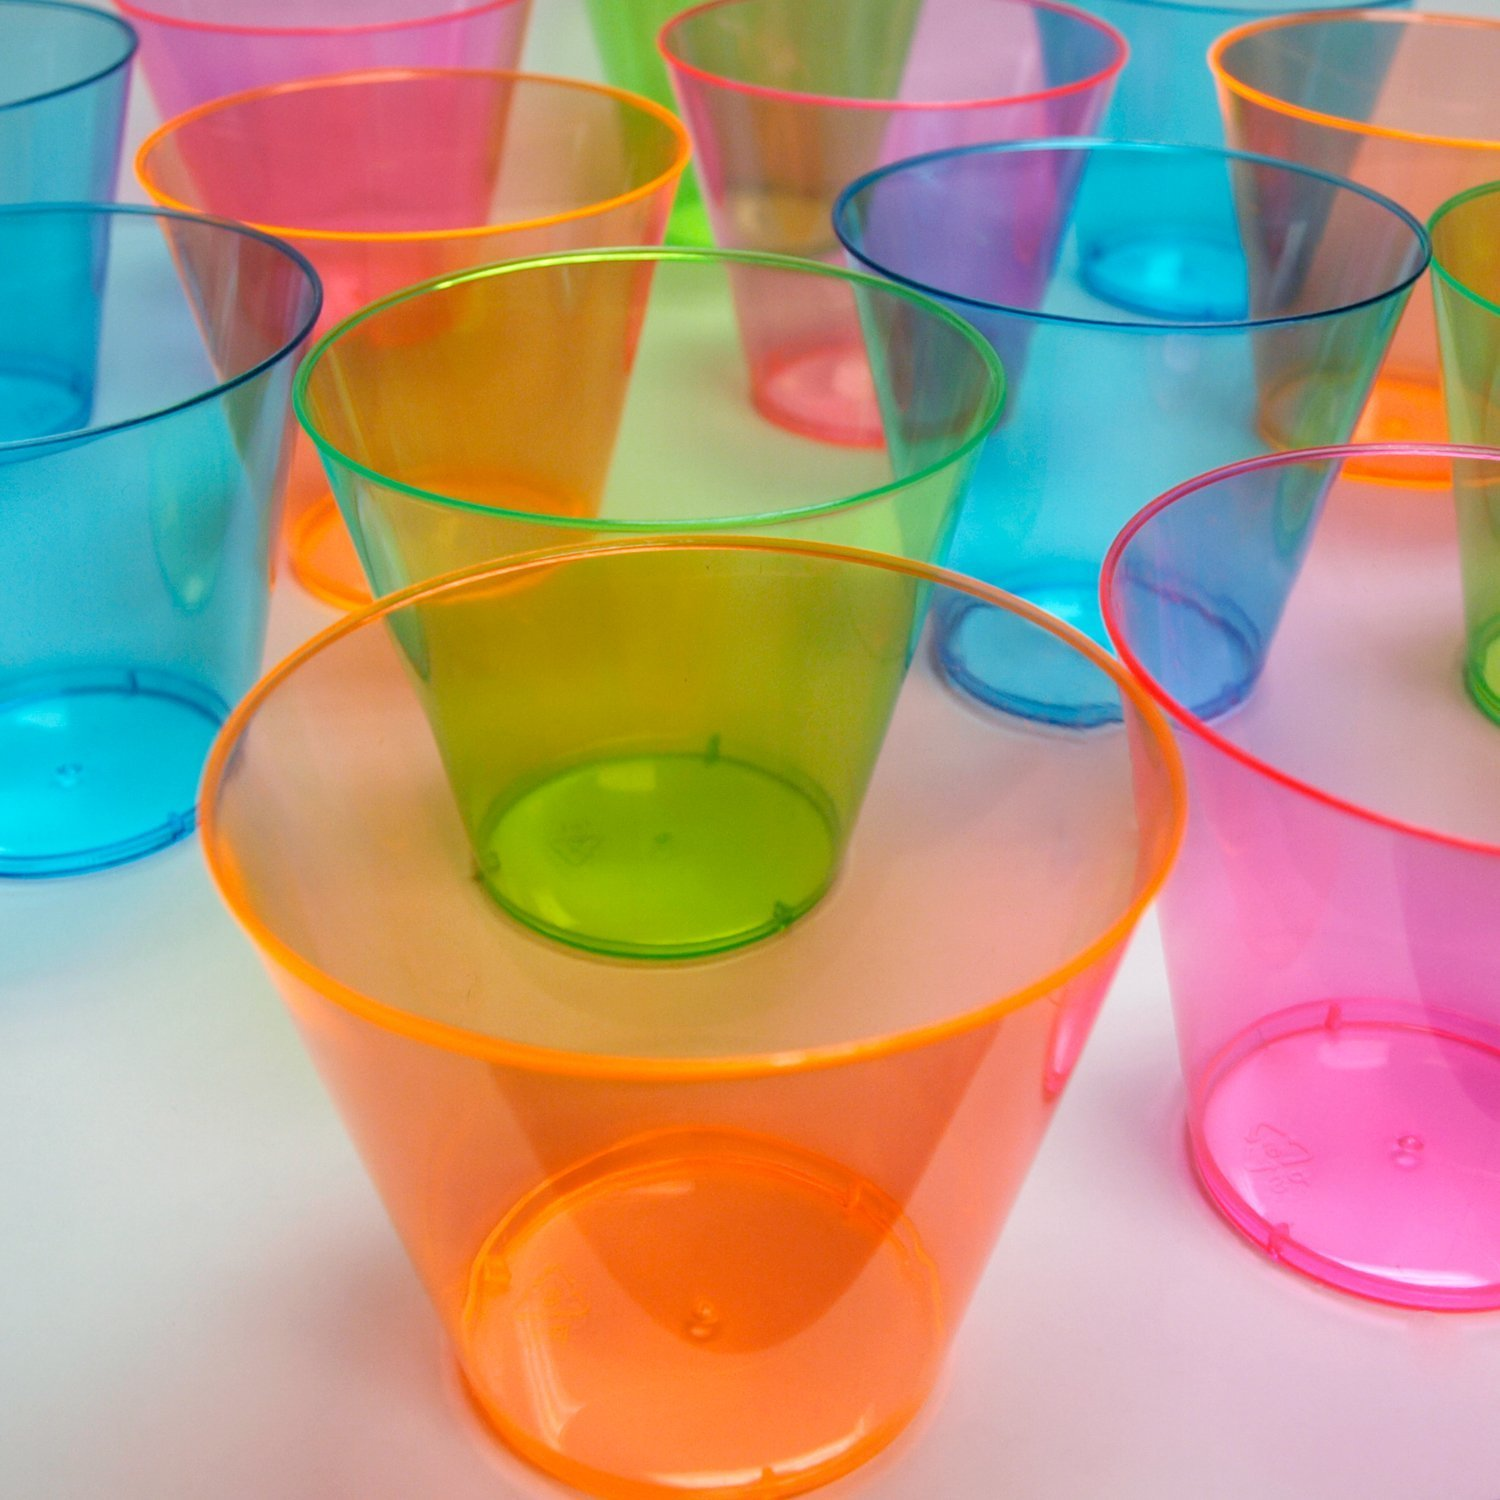 Party Essentials Hard Plastic 9-Ounce Party Cups/Old Fashioned Tumblers, 200-Count, Assorted Neon by Party Essentials (Image #2)